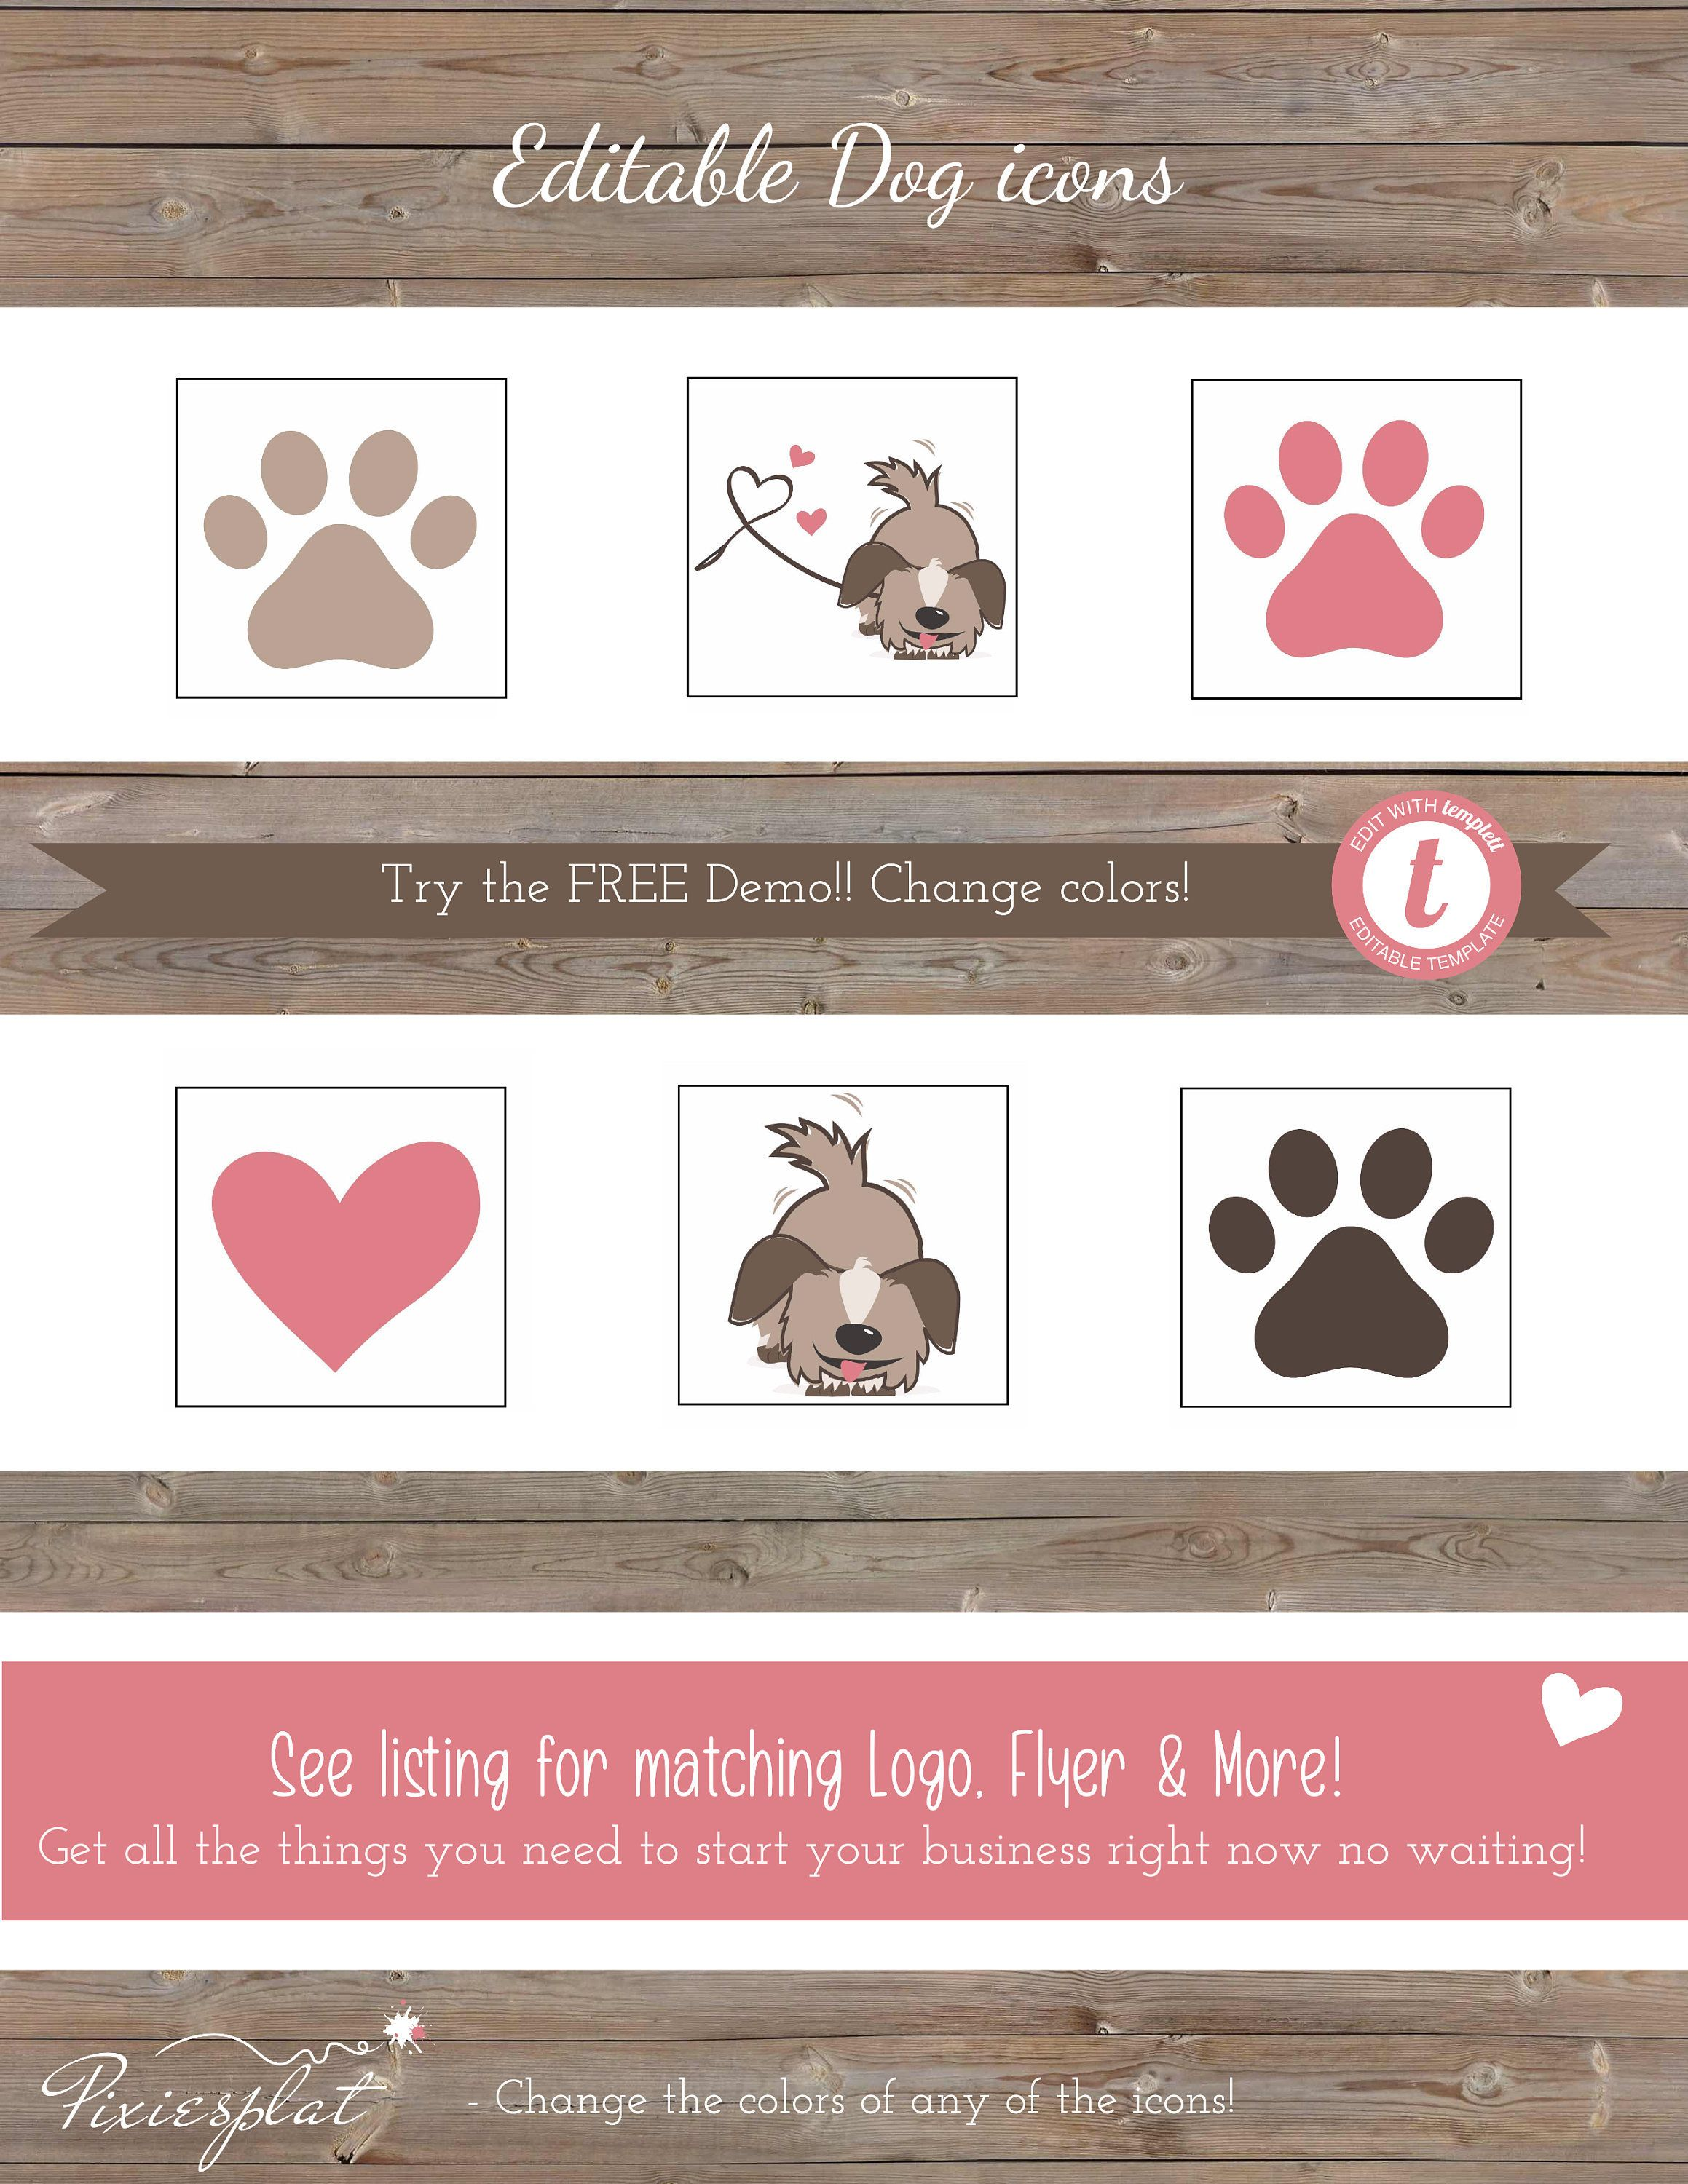 Adorable Dog, Heart and Paw Prints Clip Art! Cute Puppy